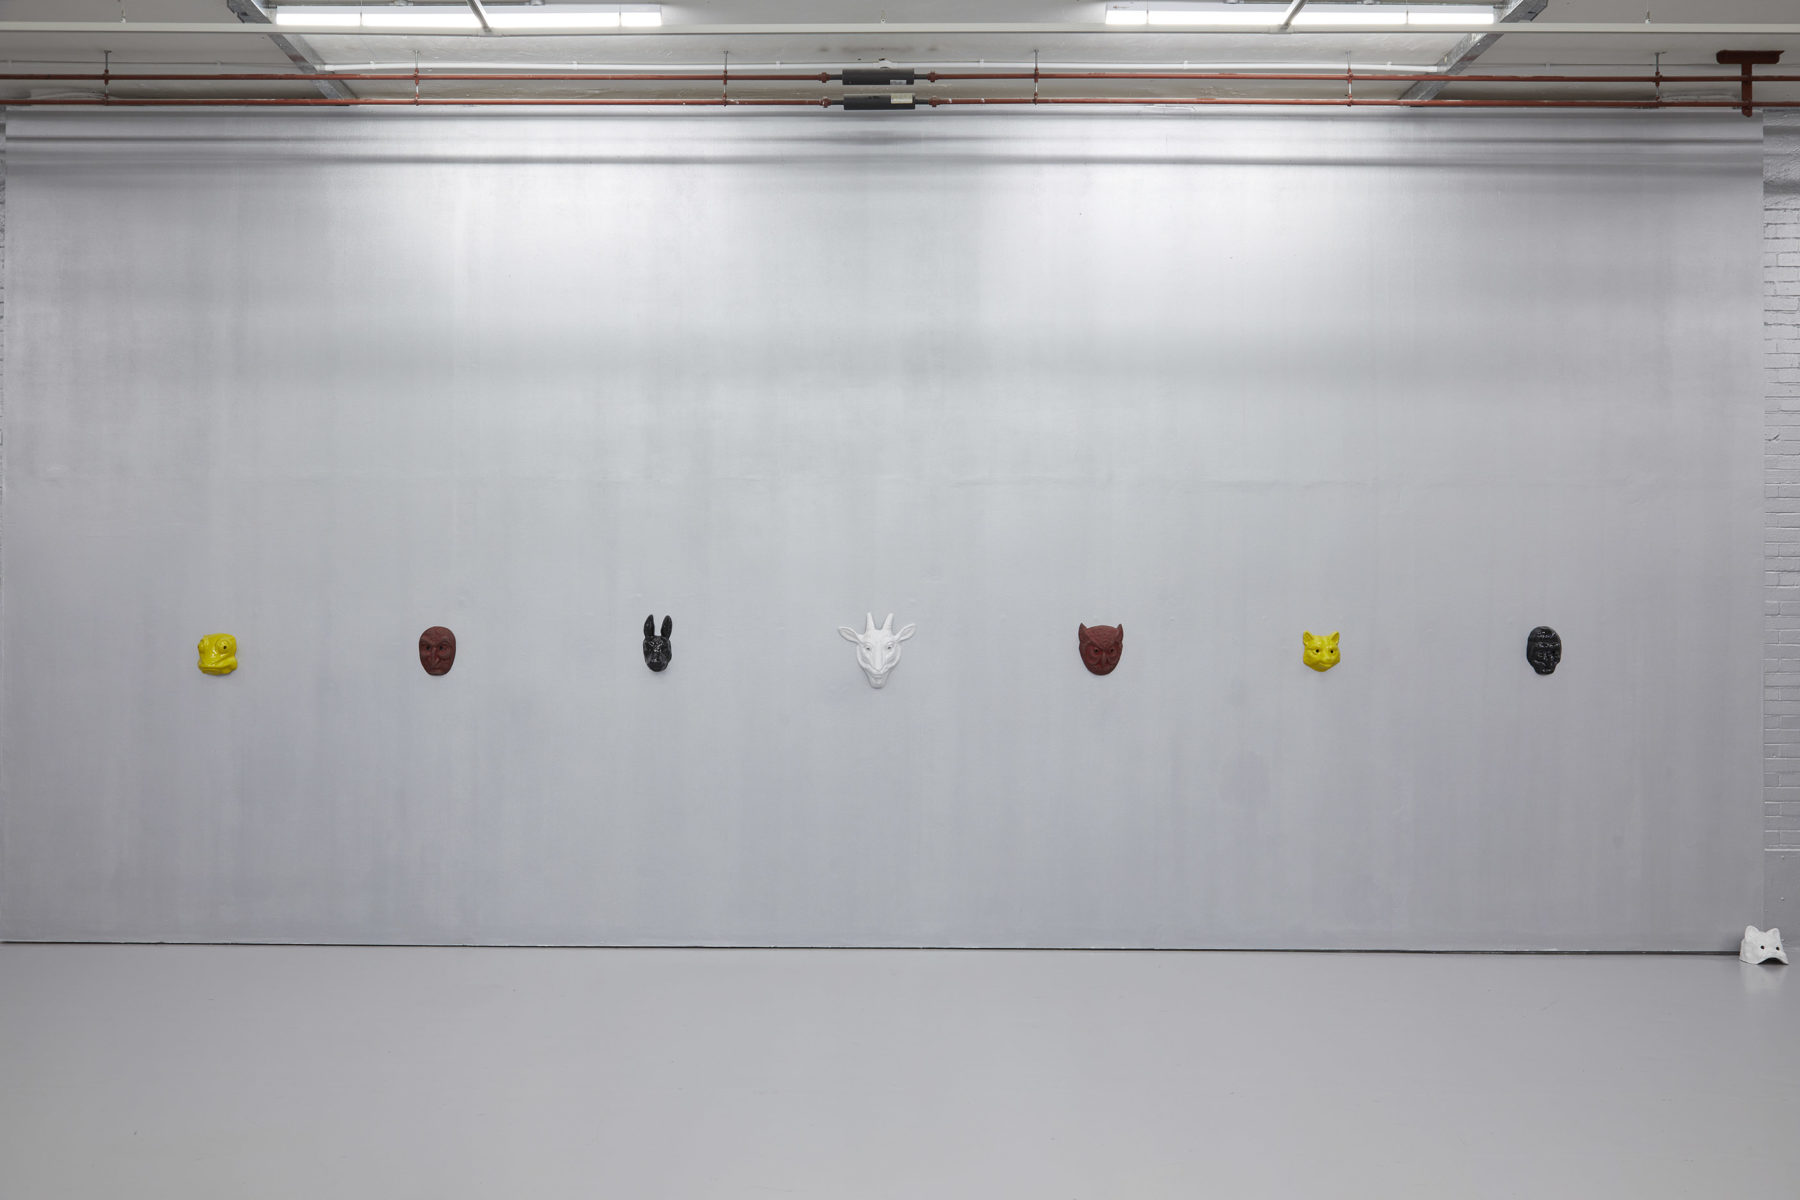 Mai-Thu Perret, With an unbounded force (2019) Installation view, The Blazing World (2019) Spike Island, Bristol. Works courtesy the artist and Simon Lee Gallery. Photograph by Stuart Whipps